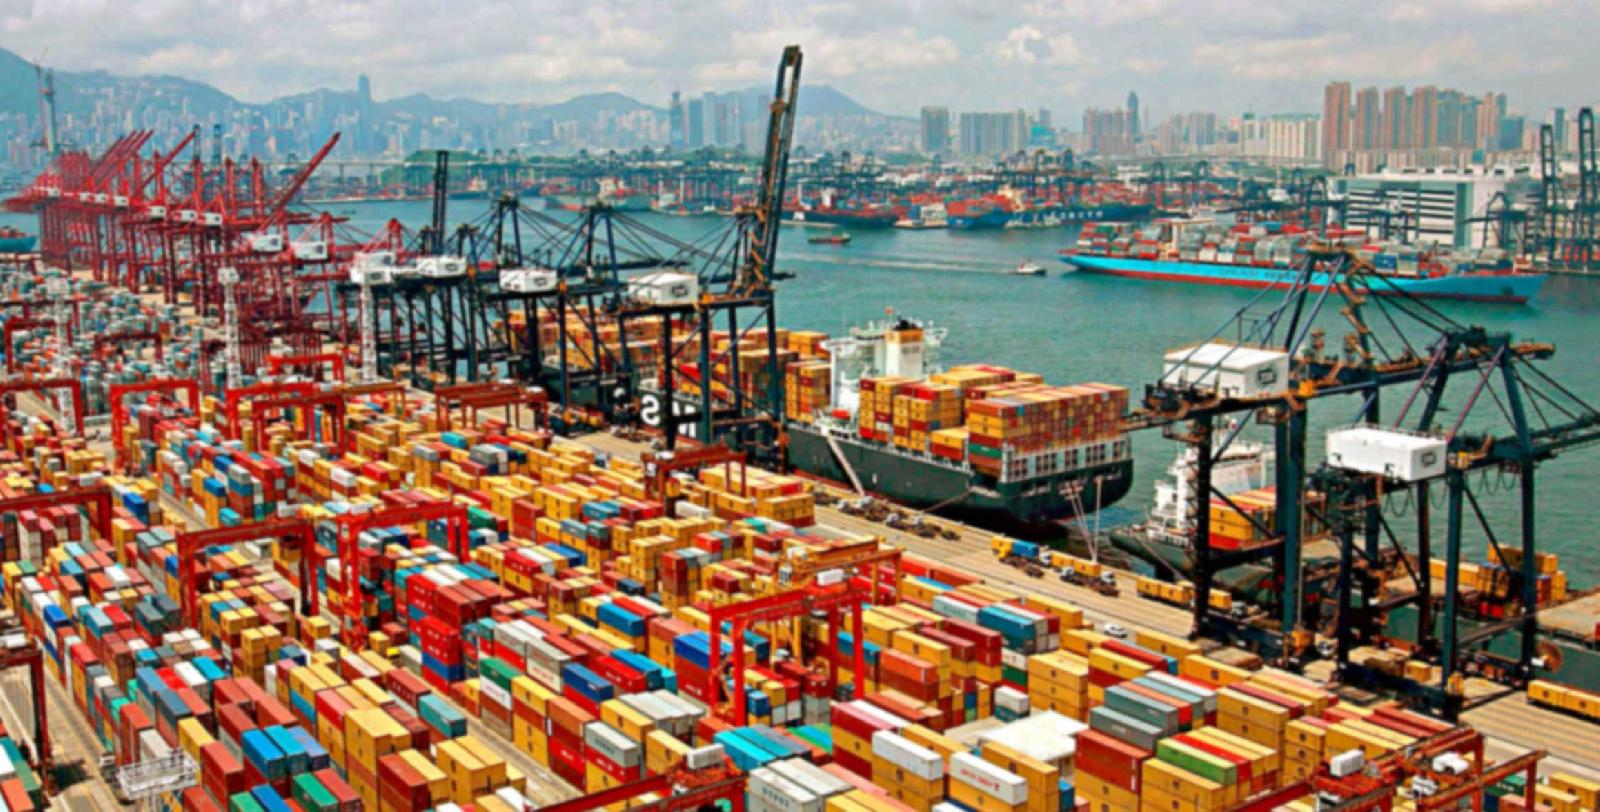 Container volumes at major Chinese ports declined 1%